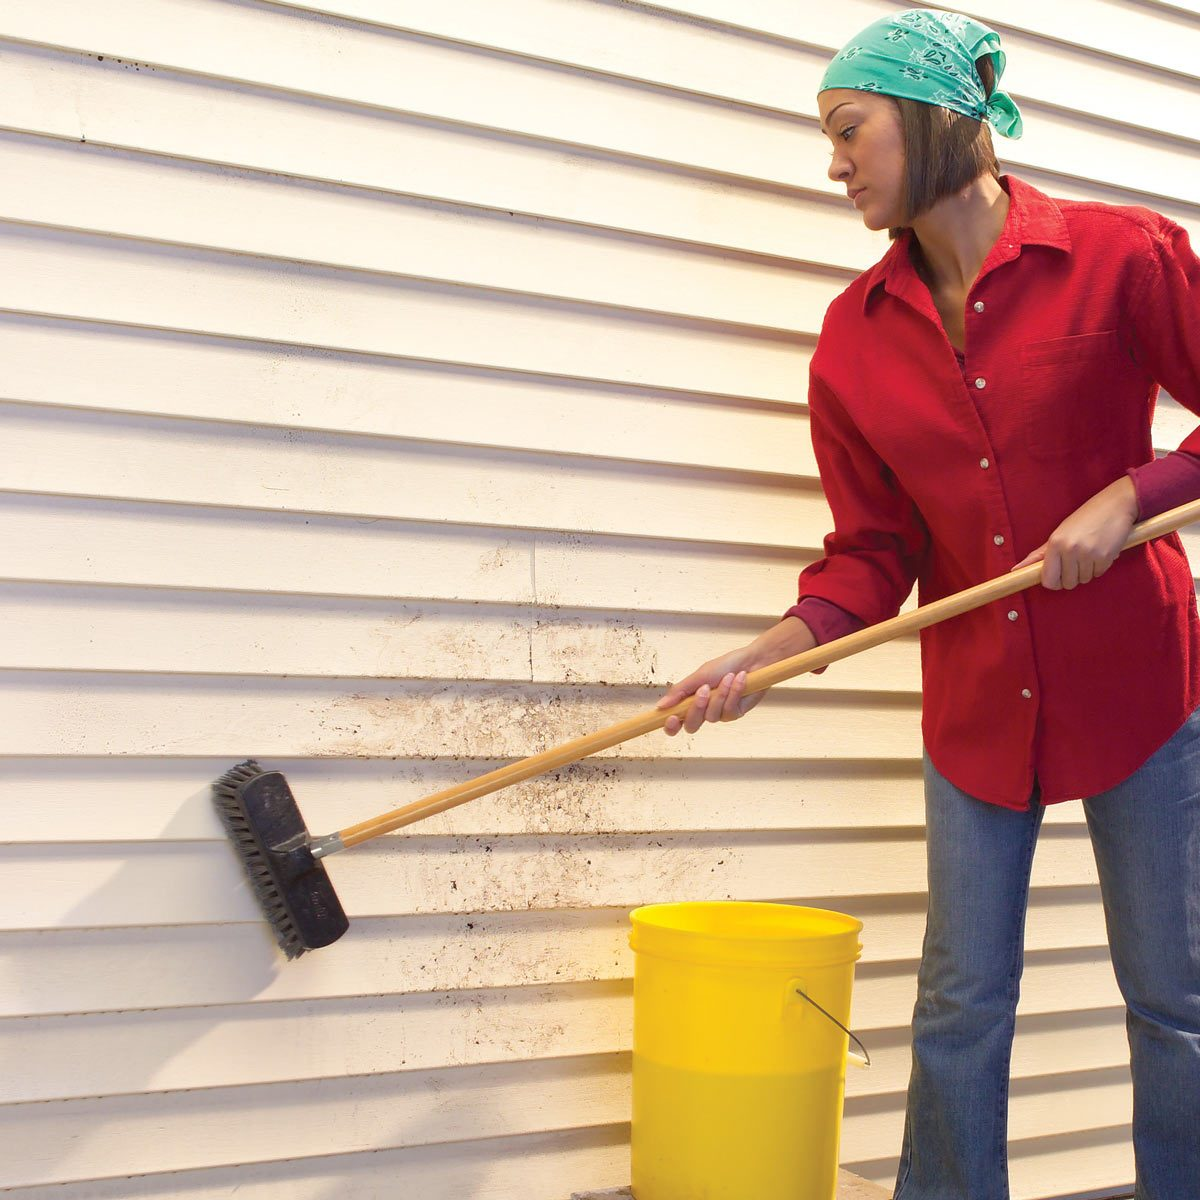 How To Clean Vinyl Siding Like A Pro The Family Handyman